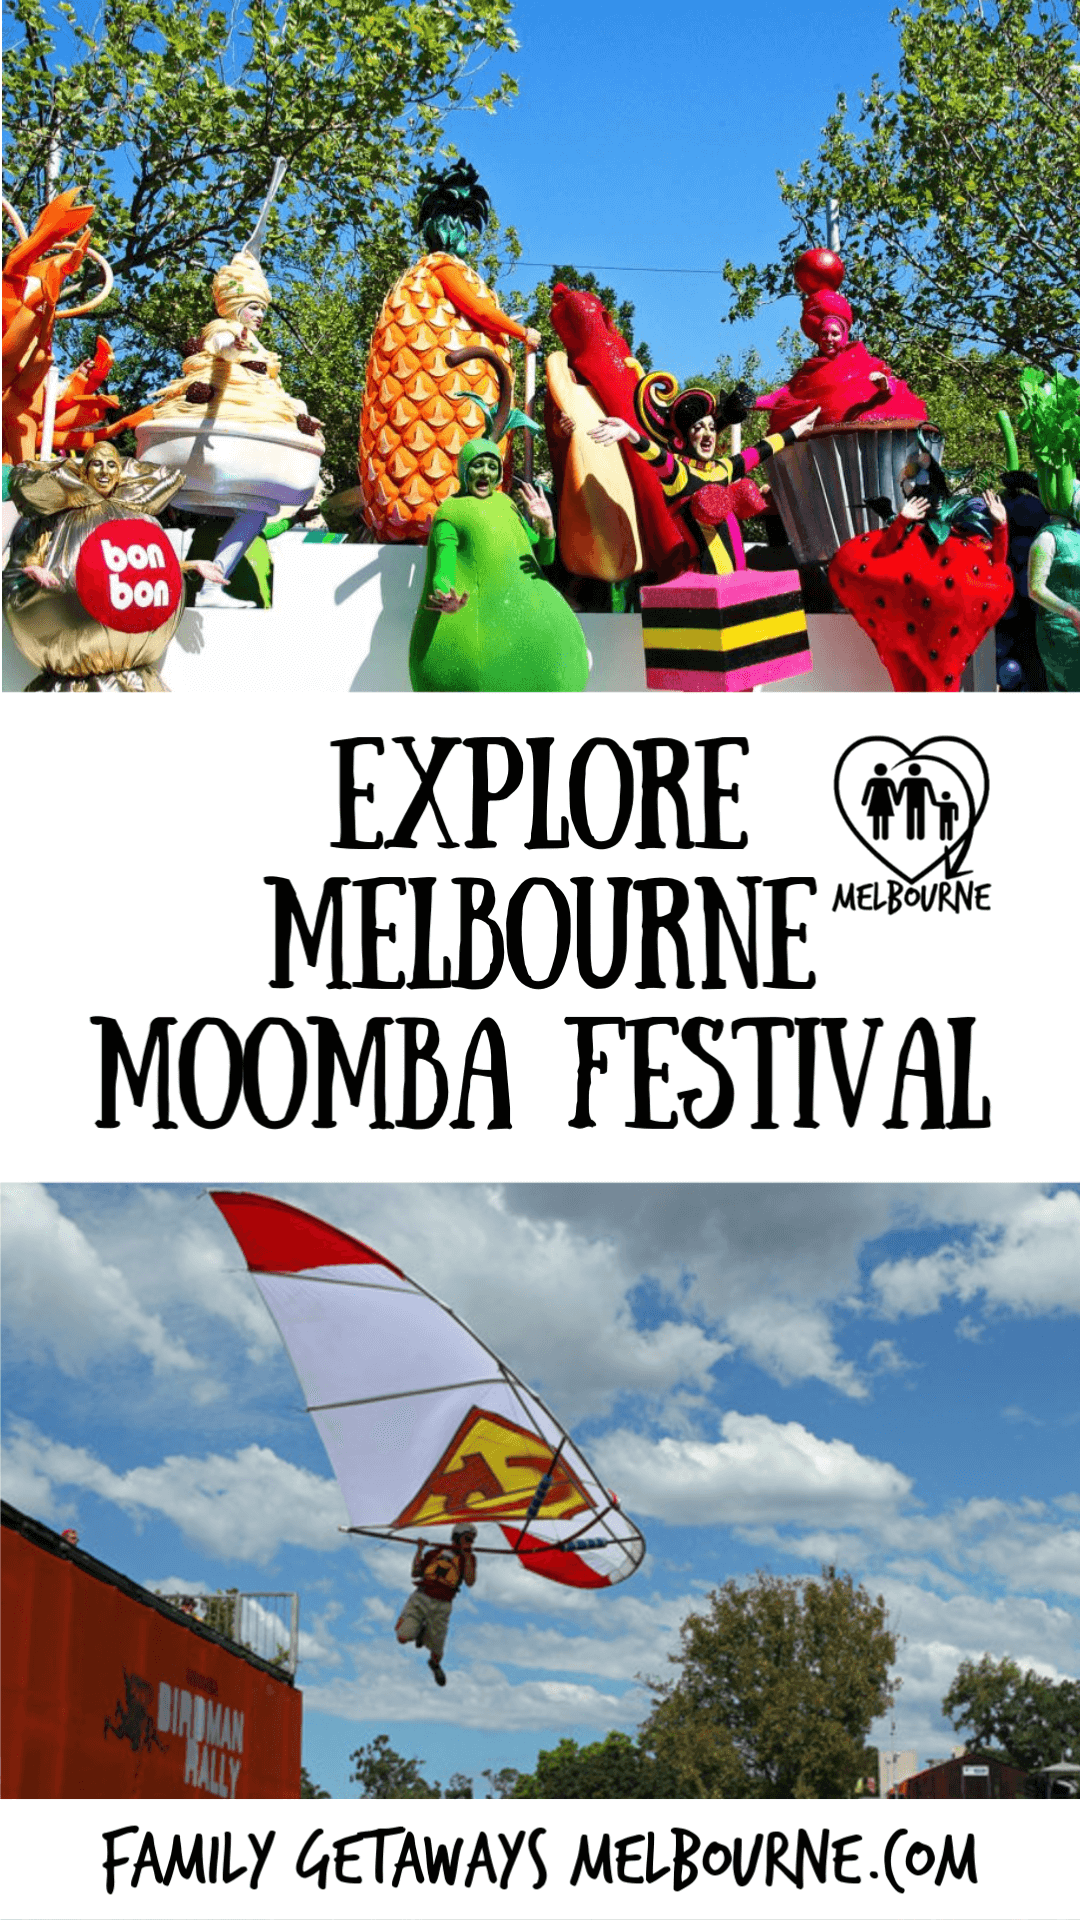 image to pin to Pinterest for the site page on the Melbourne Moomba Festival